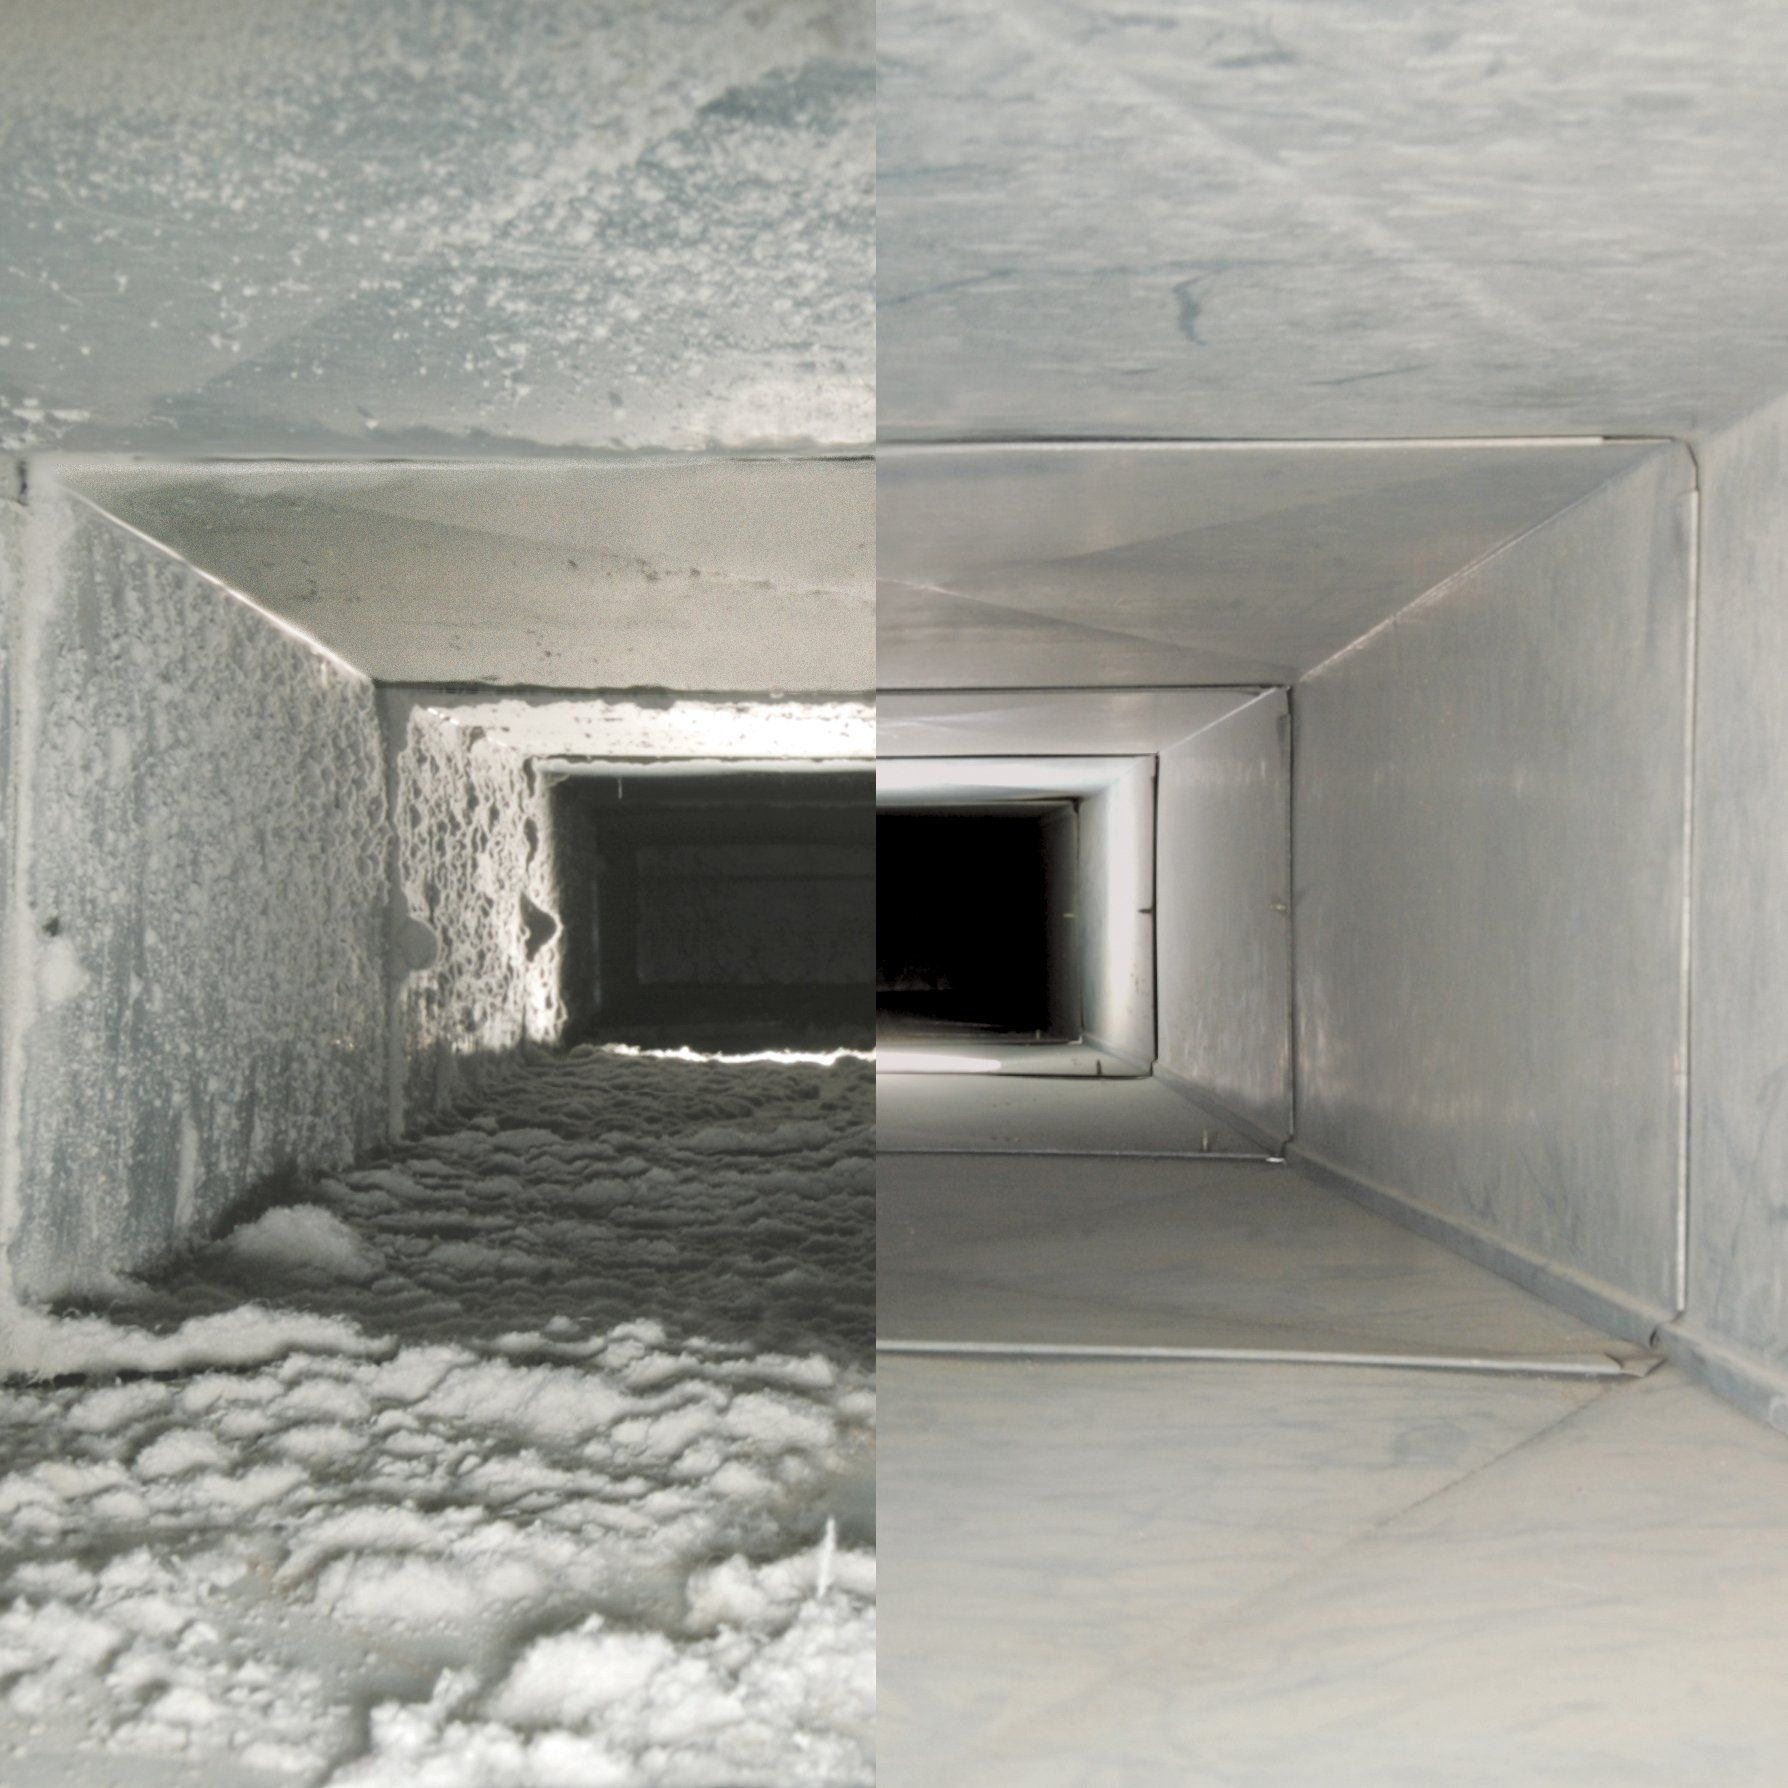 How To Remove Mold From Air Ducts How to remove, Remove